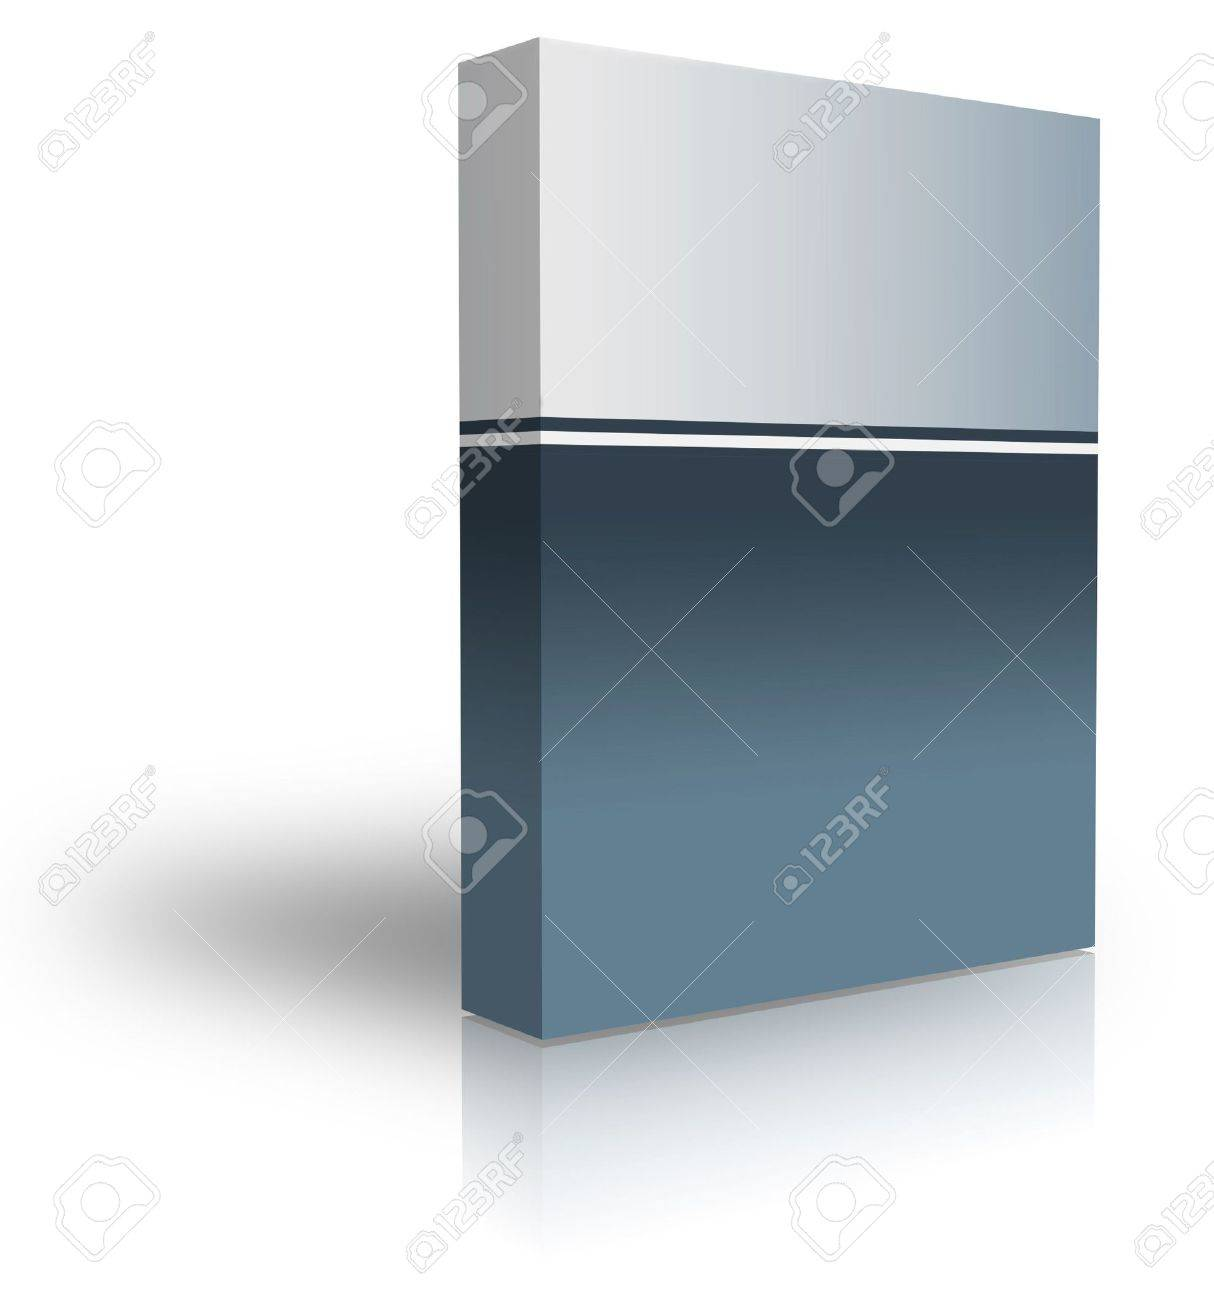 blank box  over white background- computer generated clipart Stock Photo - 863832